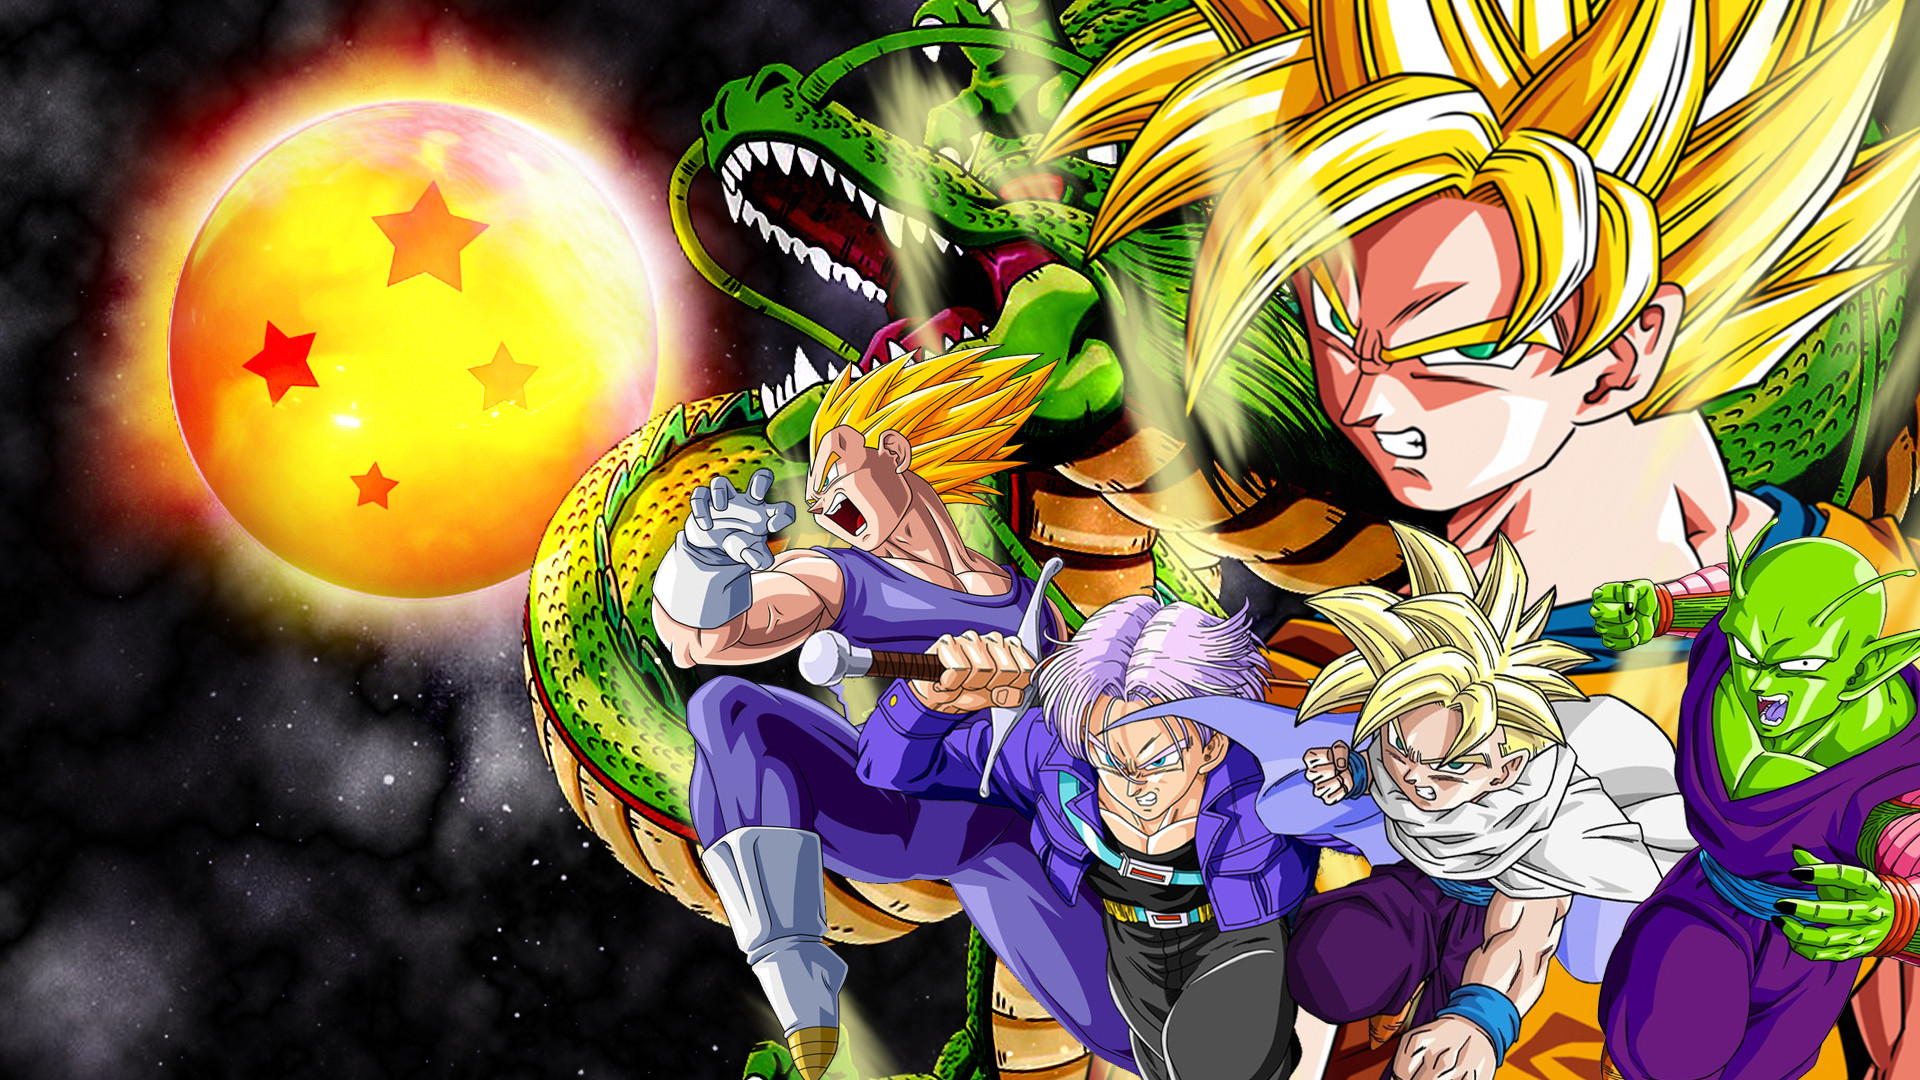 30 S In High Quality Dragon Ball Z By Nerthus Habbal